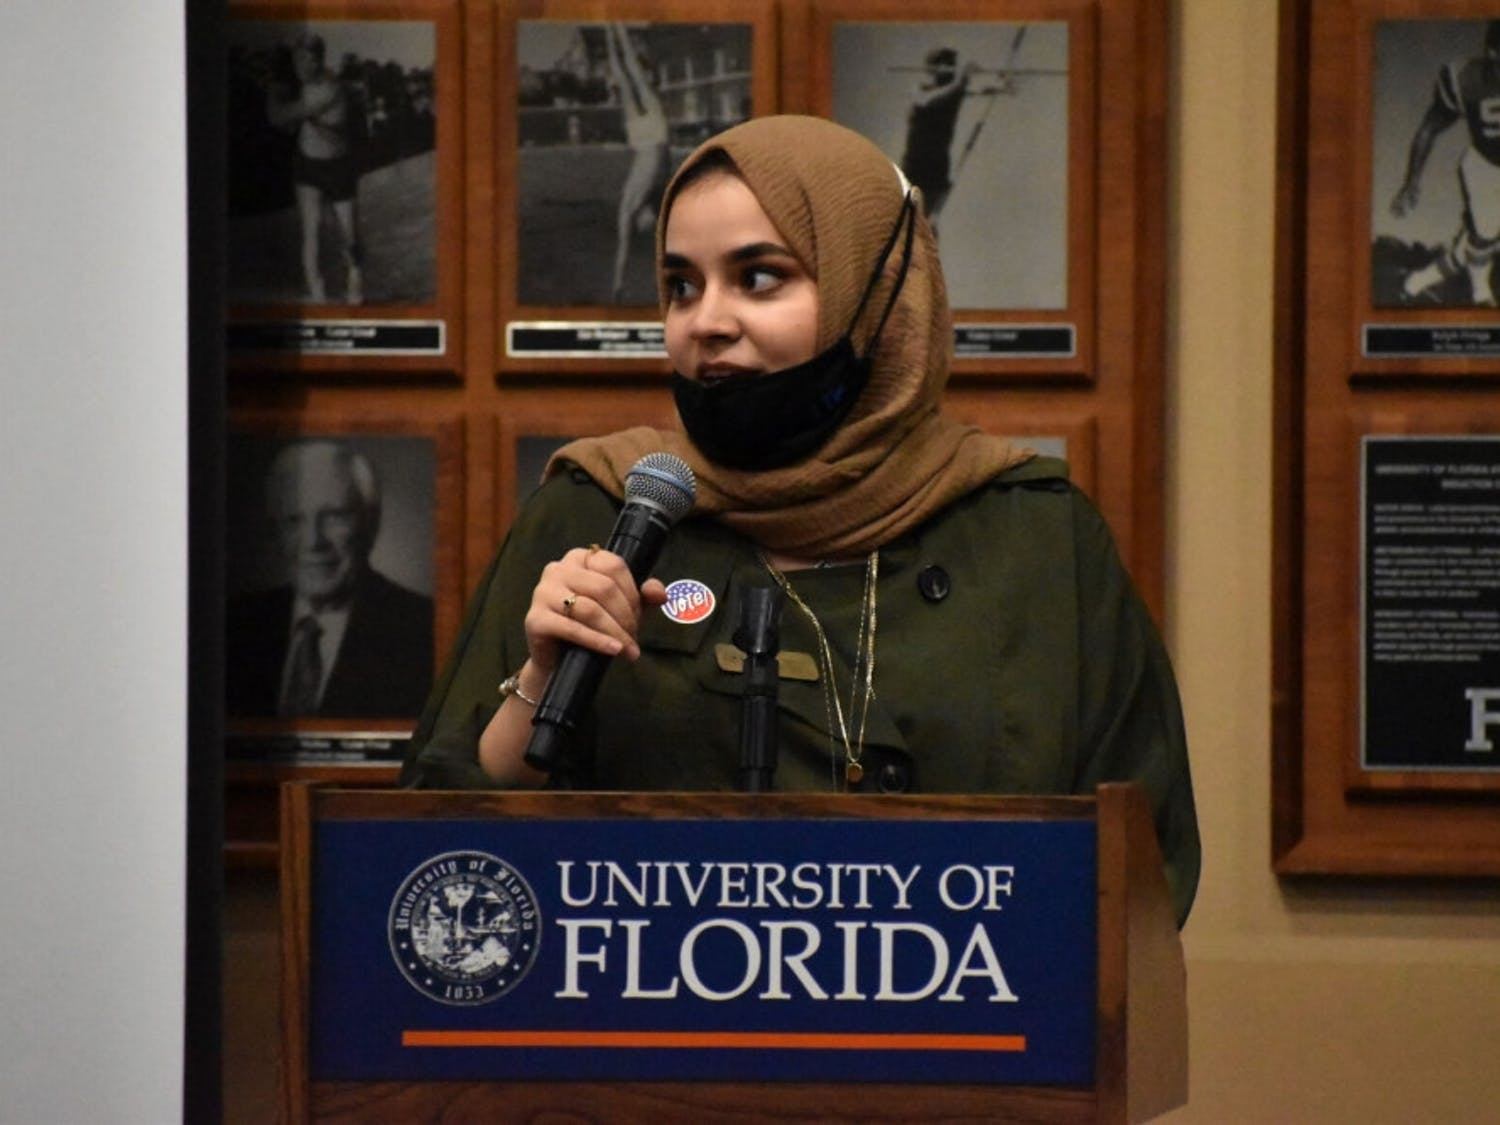 Mona Samsam, 22, a UF chemical engineering senior, and president of Islam on Campus, reminds attendees to vote in the upcoming November election, during political activist Linda Sarsour's speaking event at the Touchdown Terrace on Tuesday, Oct. 27, 2020.